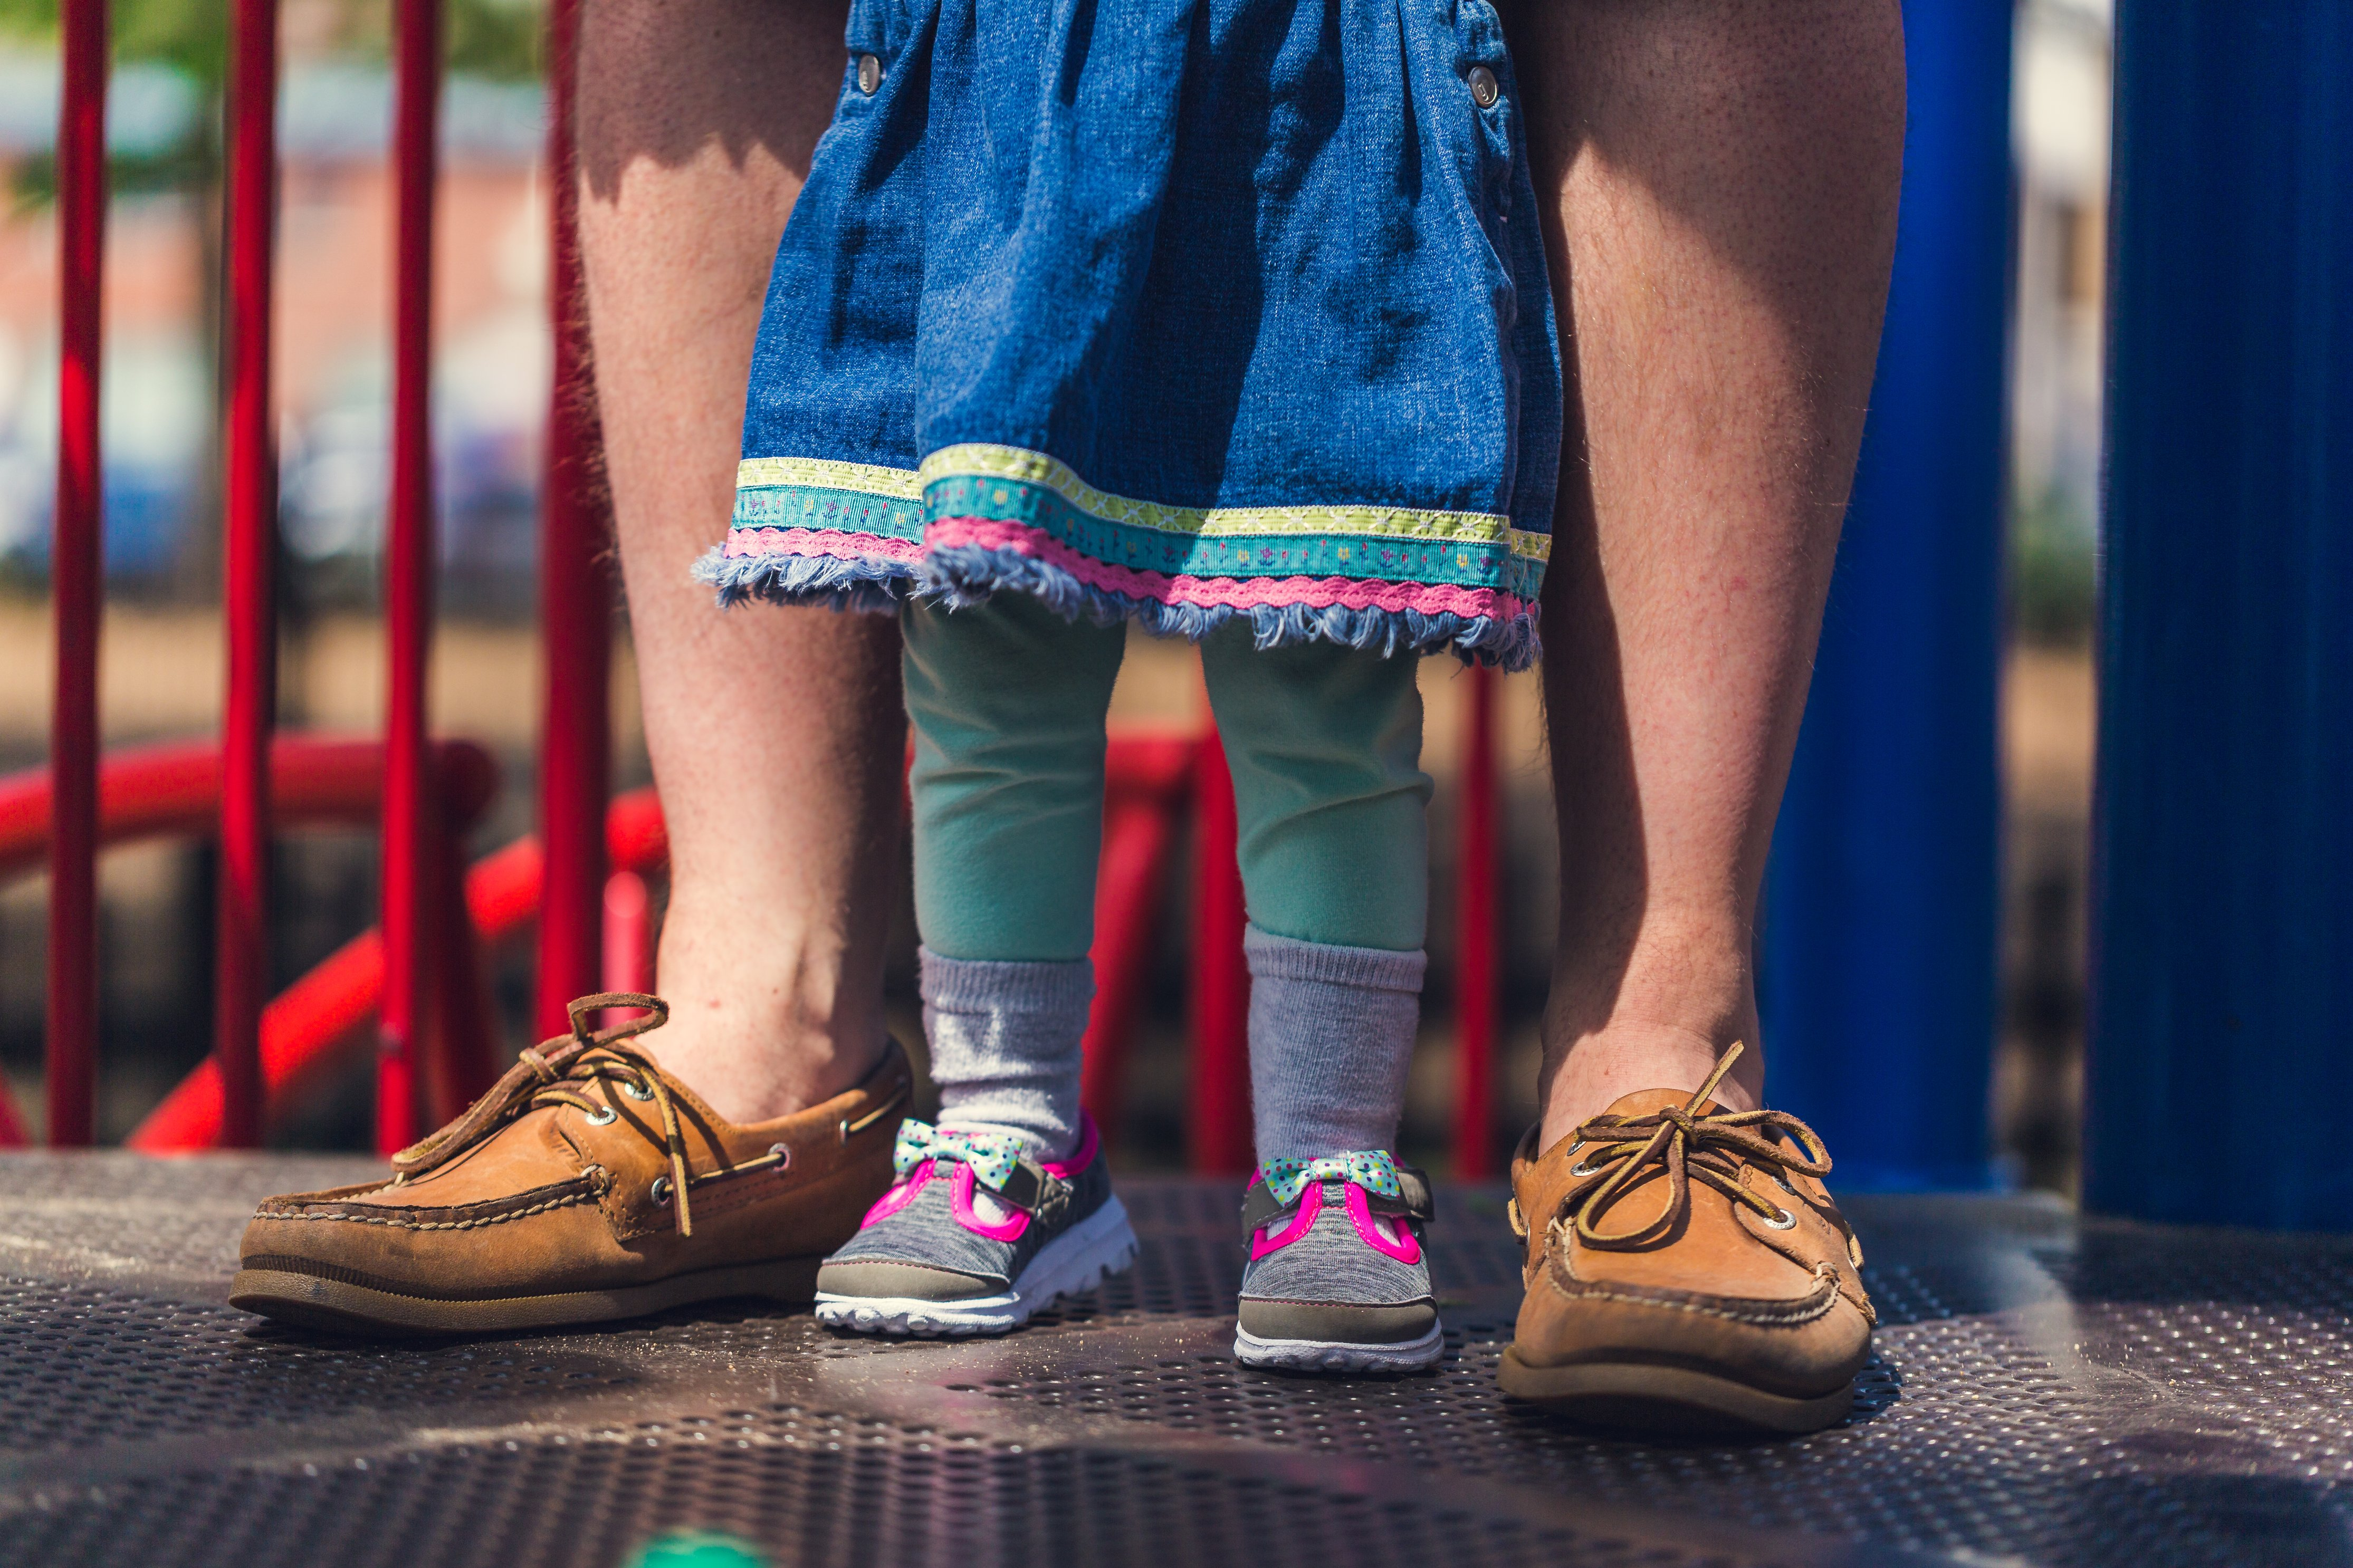 Photo of a child and parent's feet together